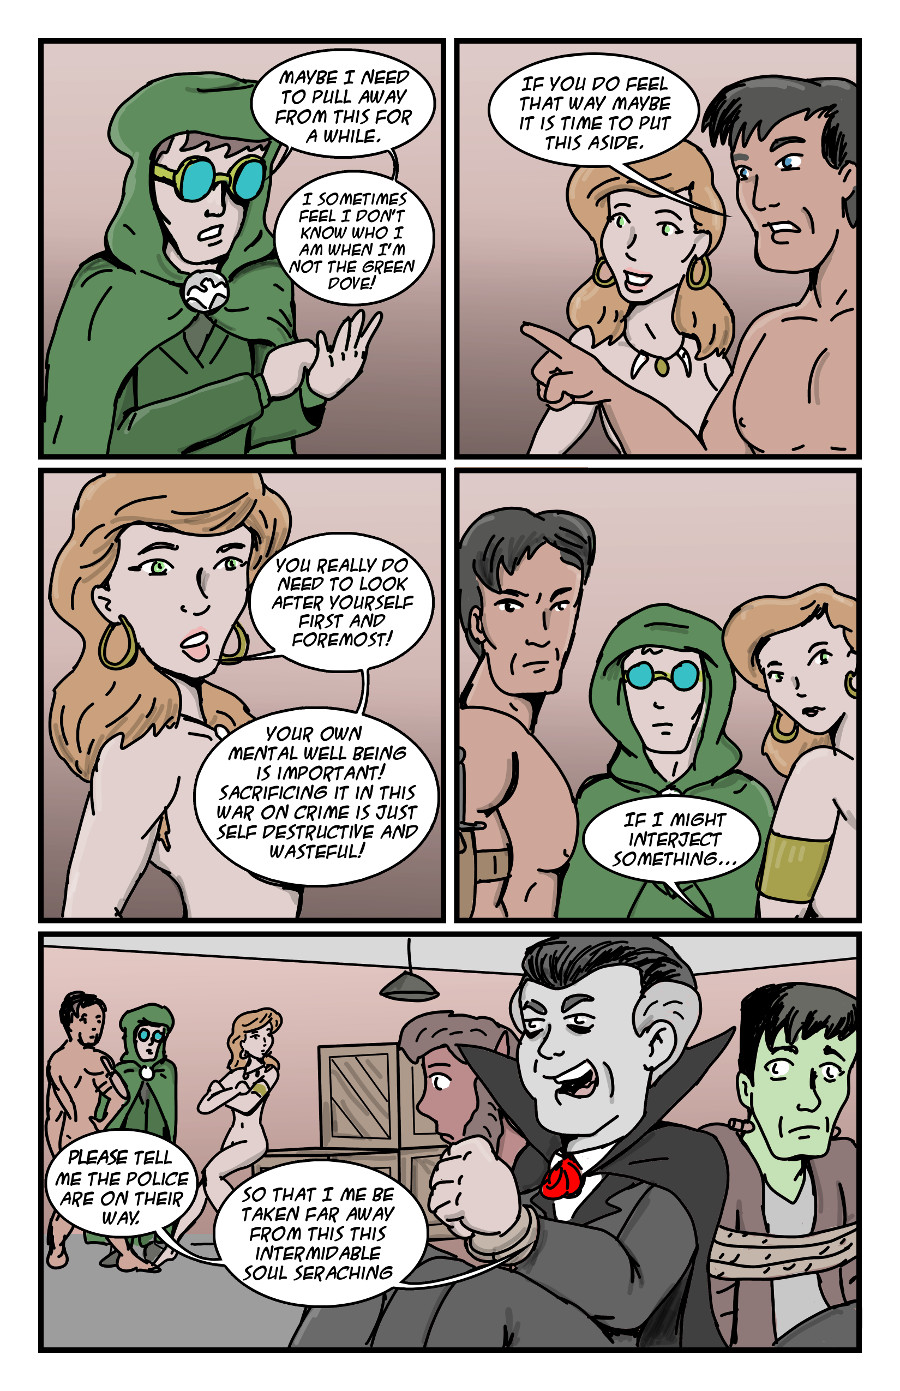 The Green Dove by Jay042 Page 5